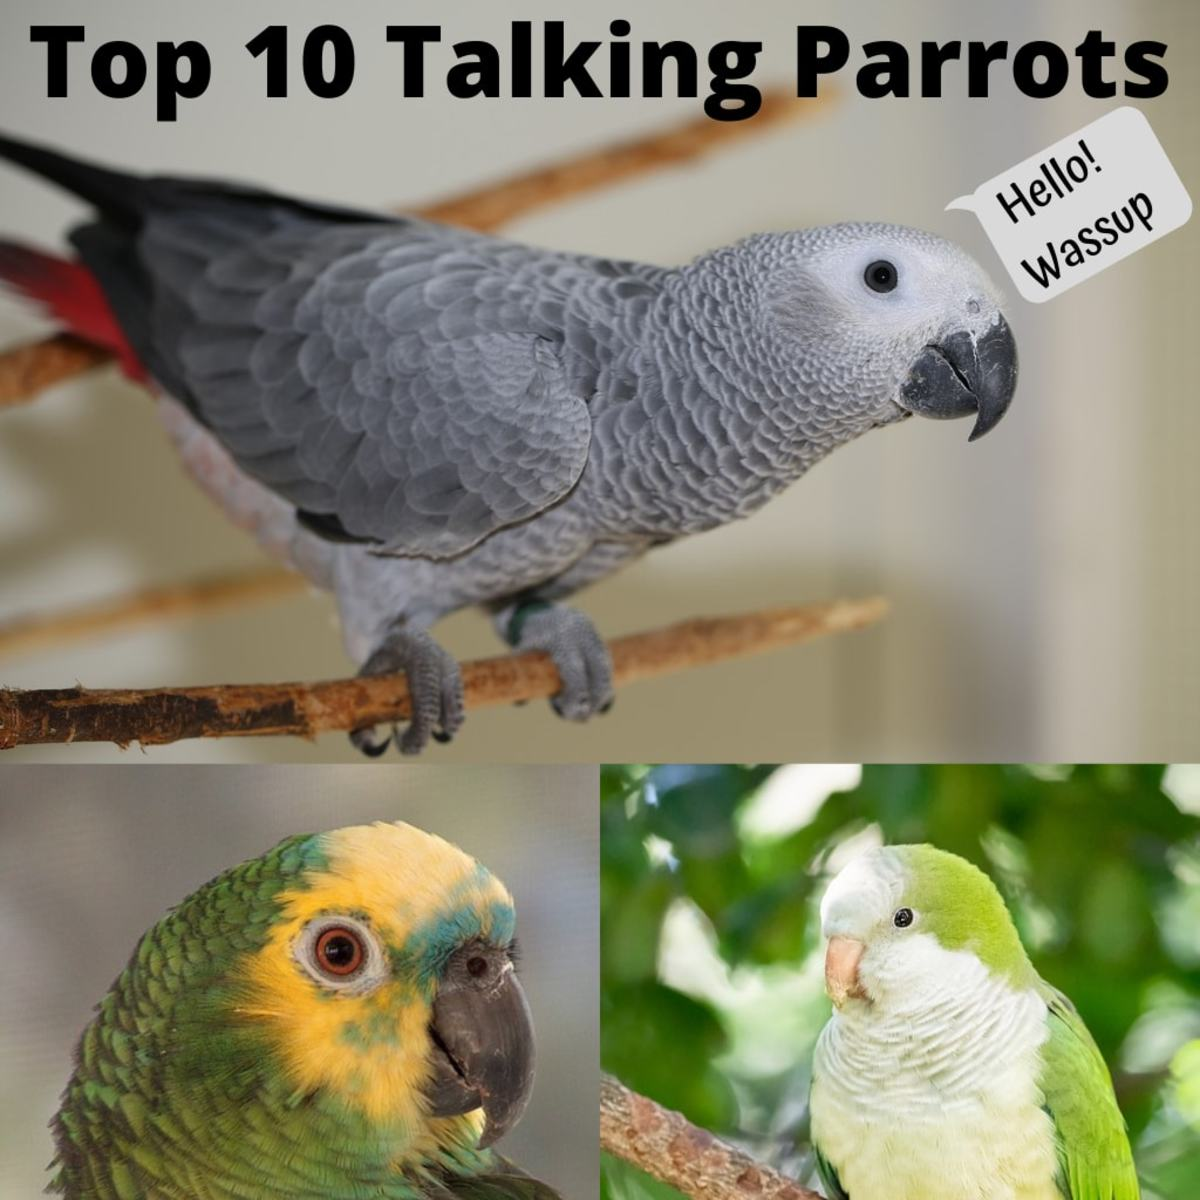 Top 10 Best Talking Parrots Pethelpful By Fellow Animal Lovers And Experts